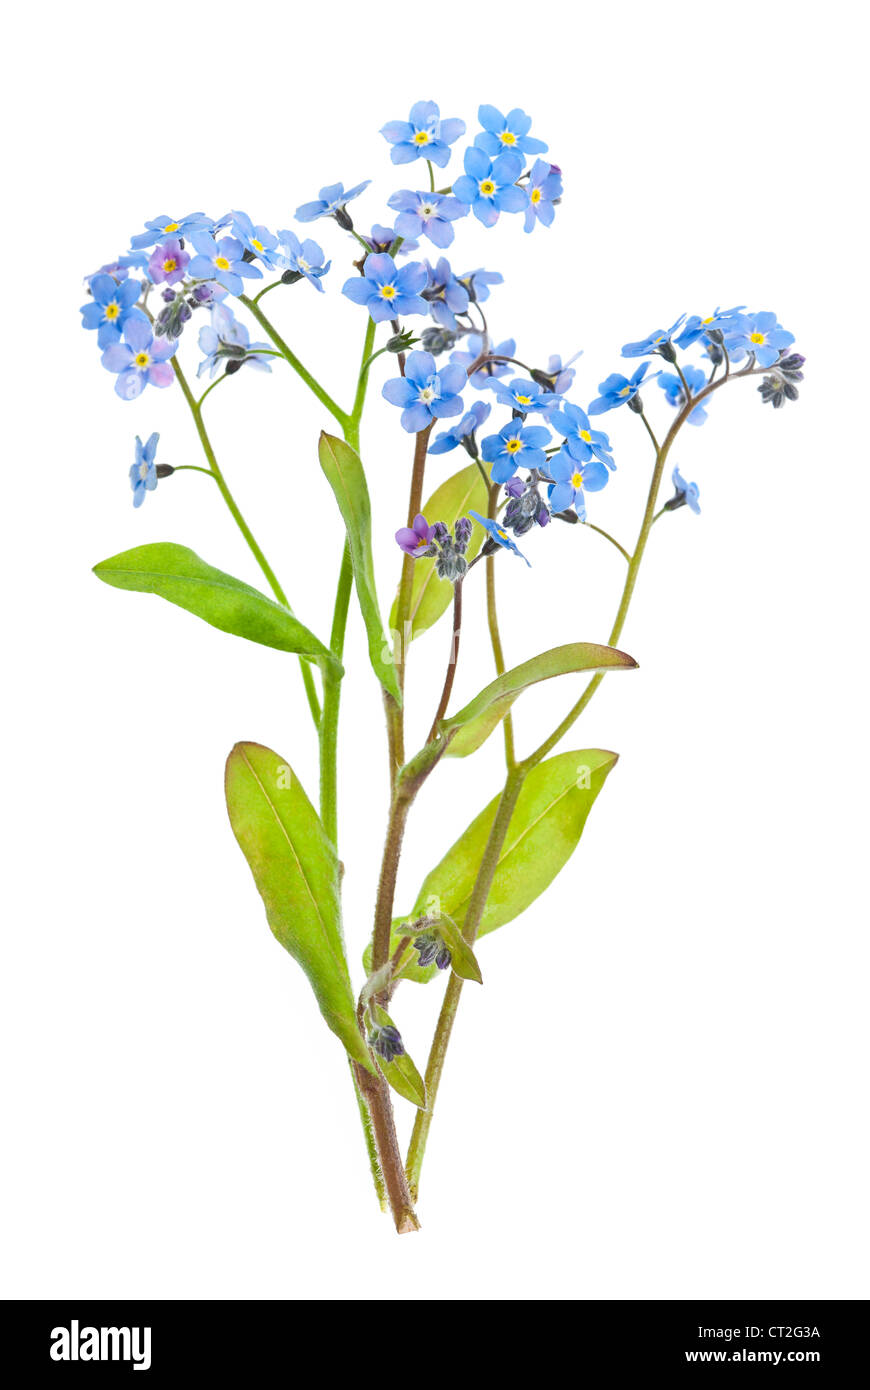 Arrangement of forget-me-not flowers with leaves isolated on white background - Stock Image